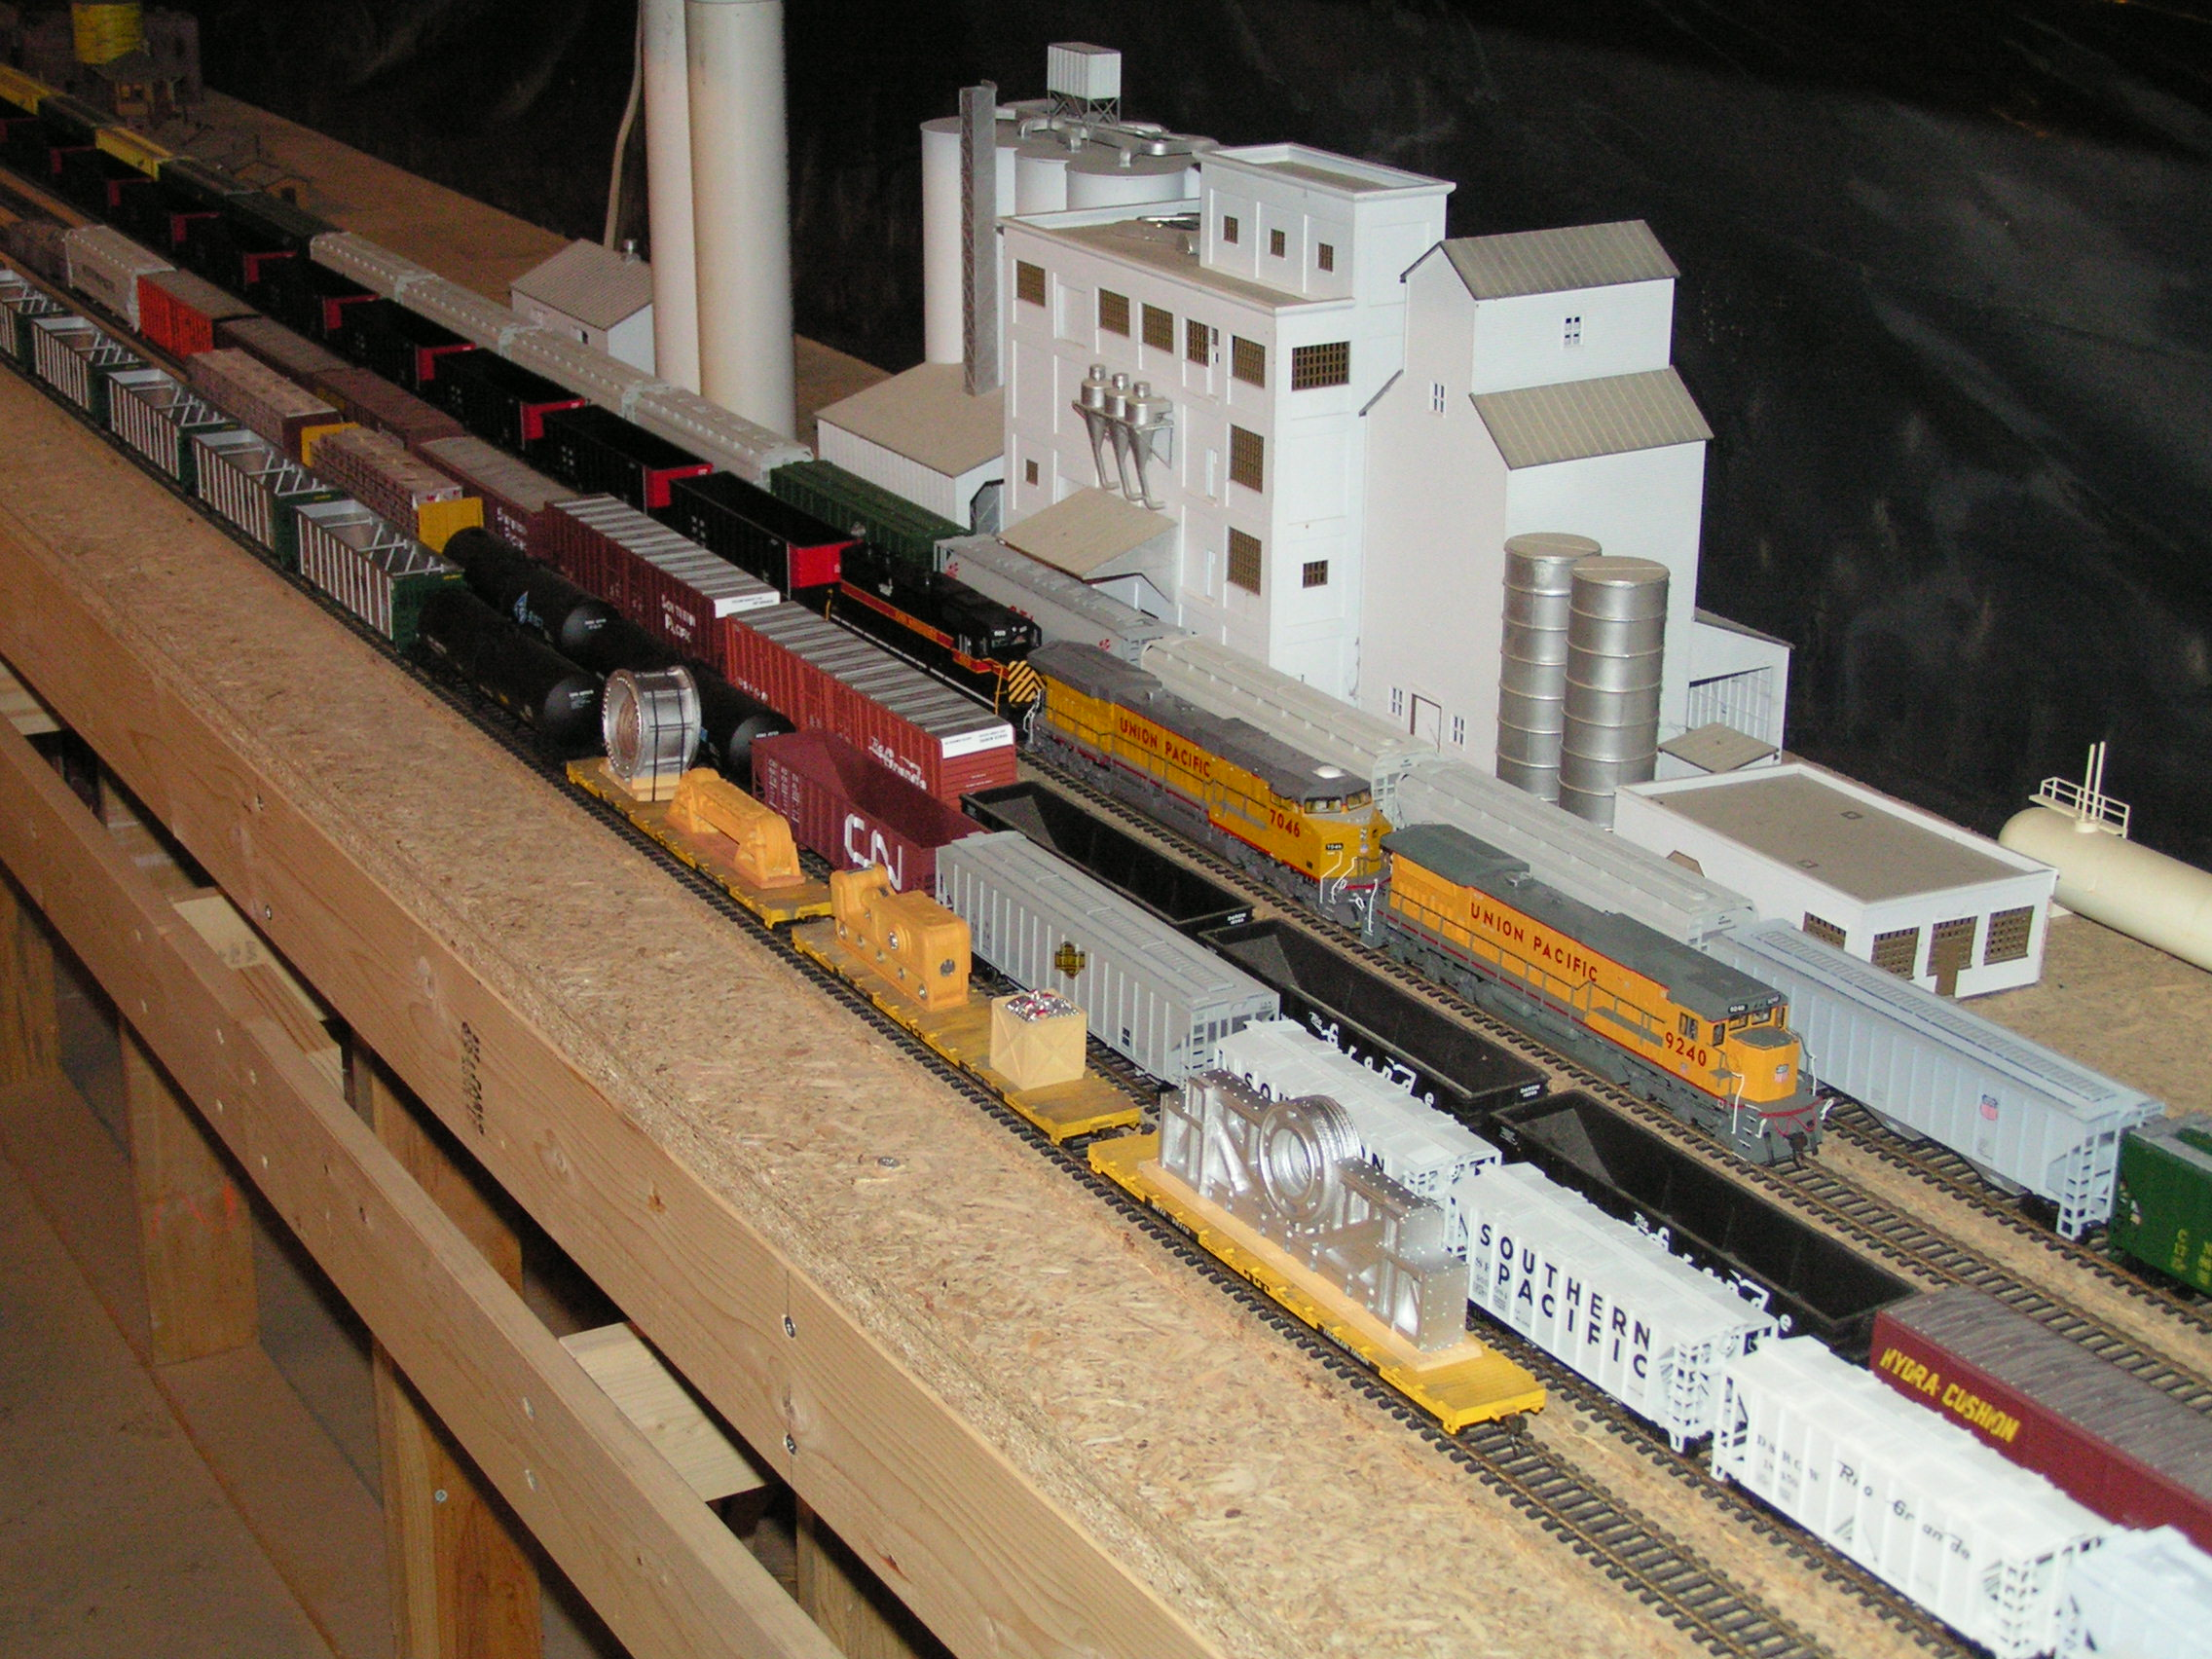 Units UP9240, UP7046, IAIS603 lead train CRMPL-8 at Cheyenne Yard on the Midland Central layout.